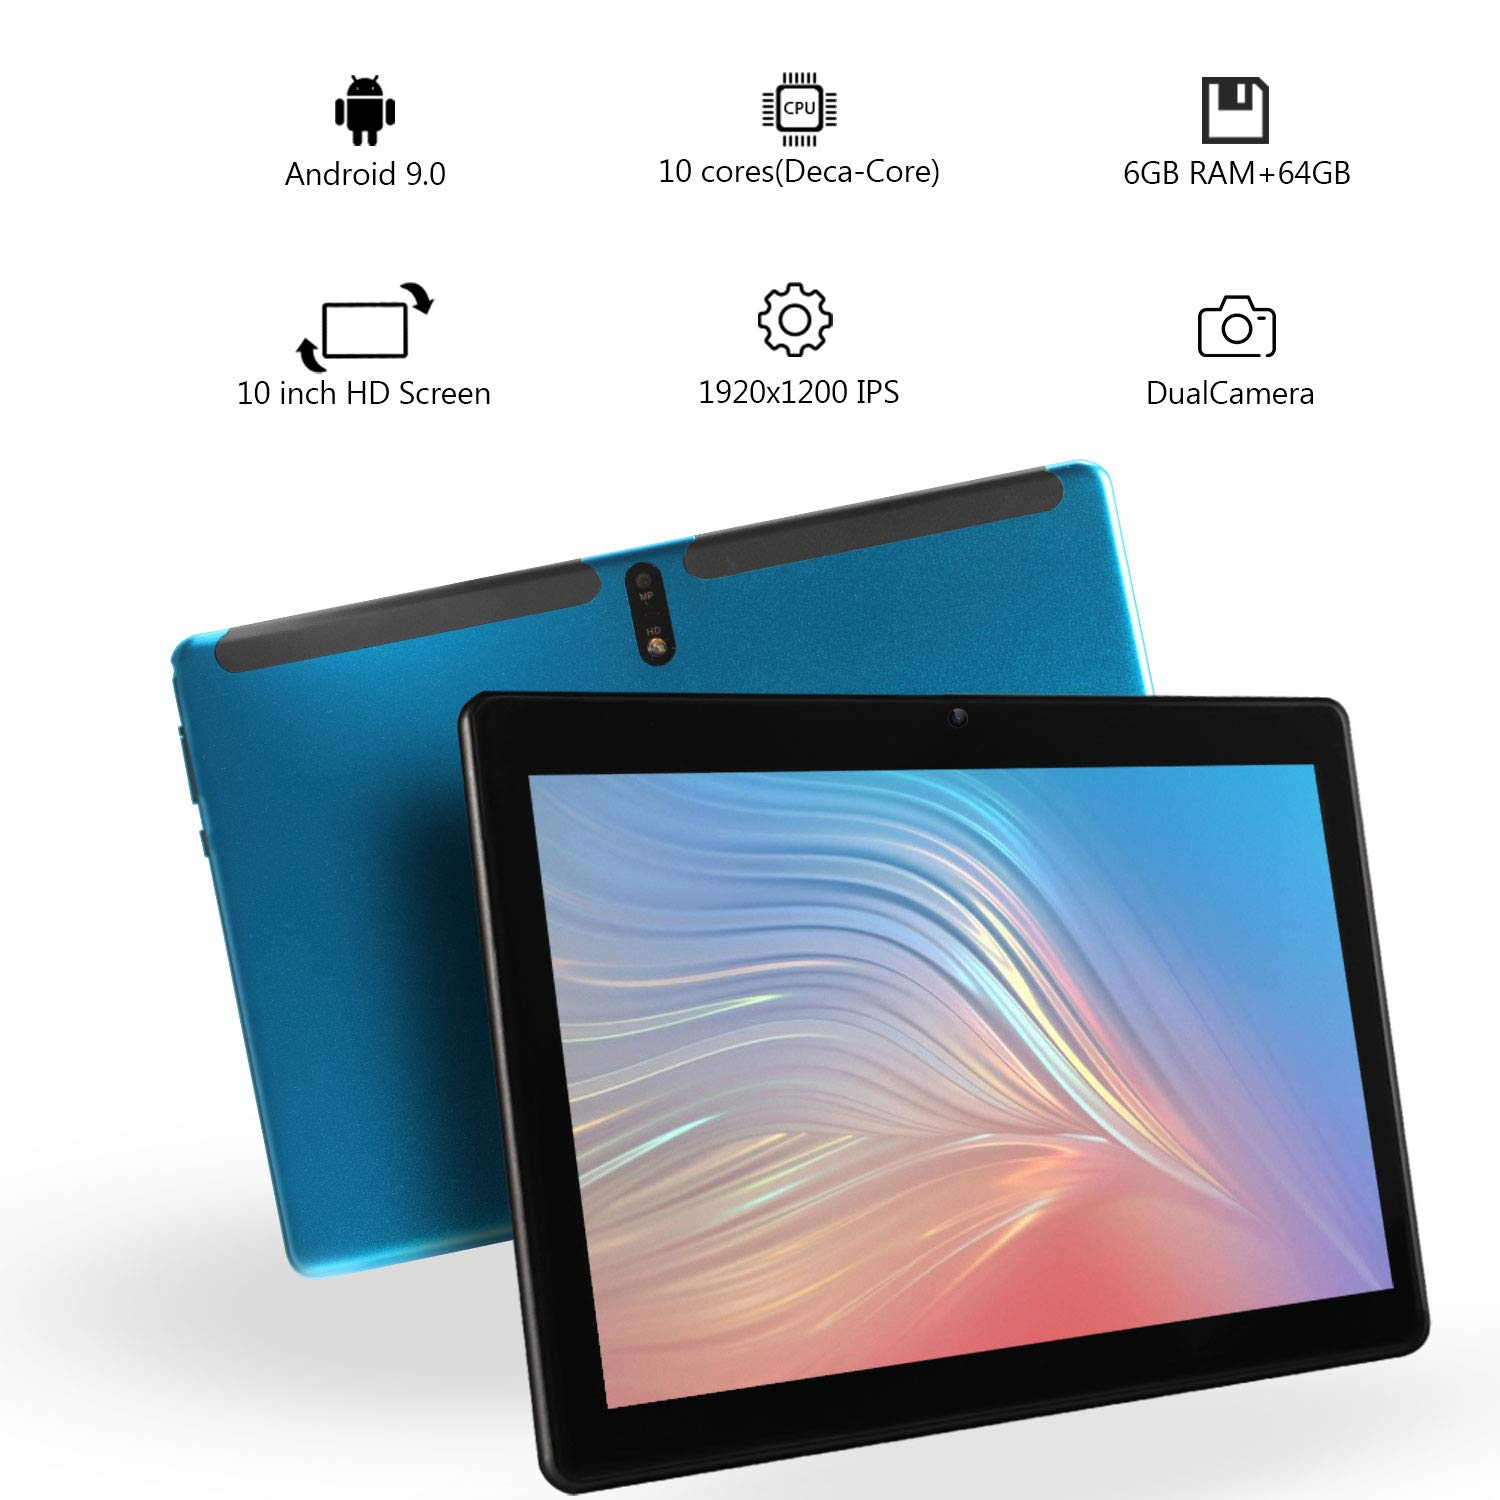 10.1'' Inch Android 9.0 Nougat Tablet PC Deca Core Pad with 6GB RAM 64GB ROM Dual Sim Card Slots 4G Unlocked Phone Call Phablet Built in WiFi Bluetooth GPS Google Play (Blue)